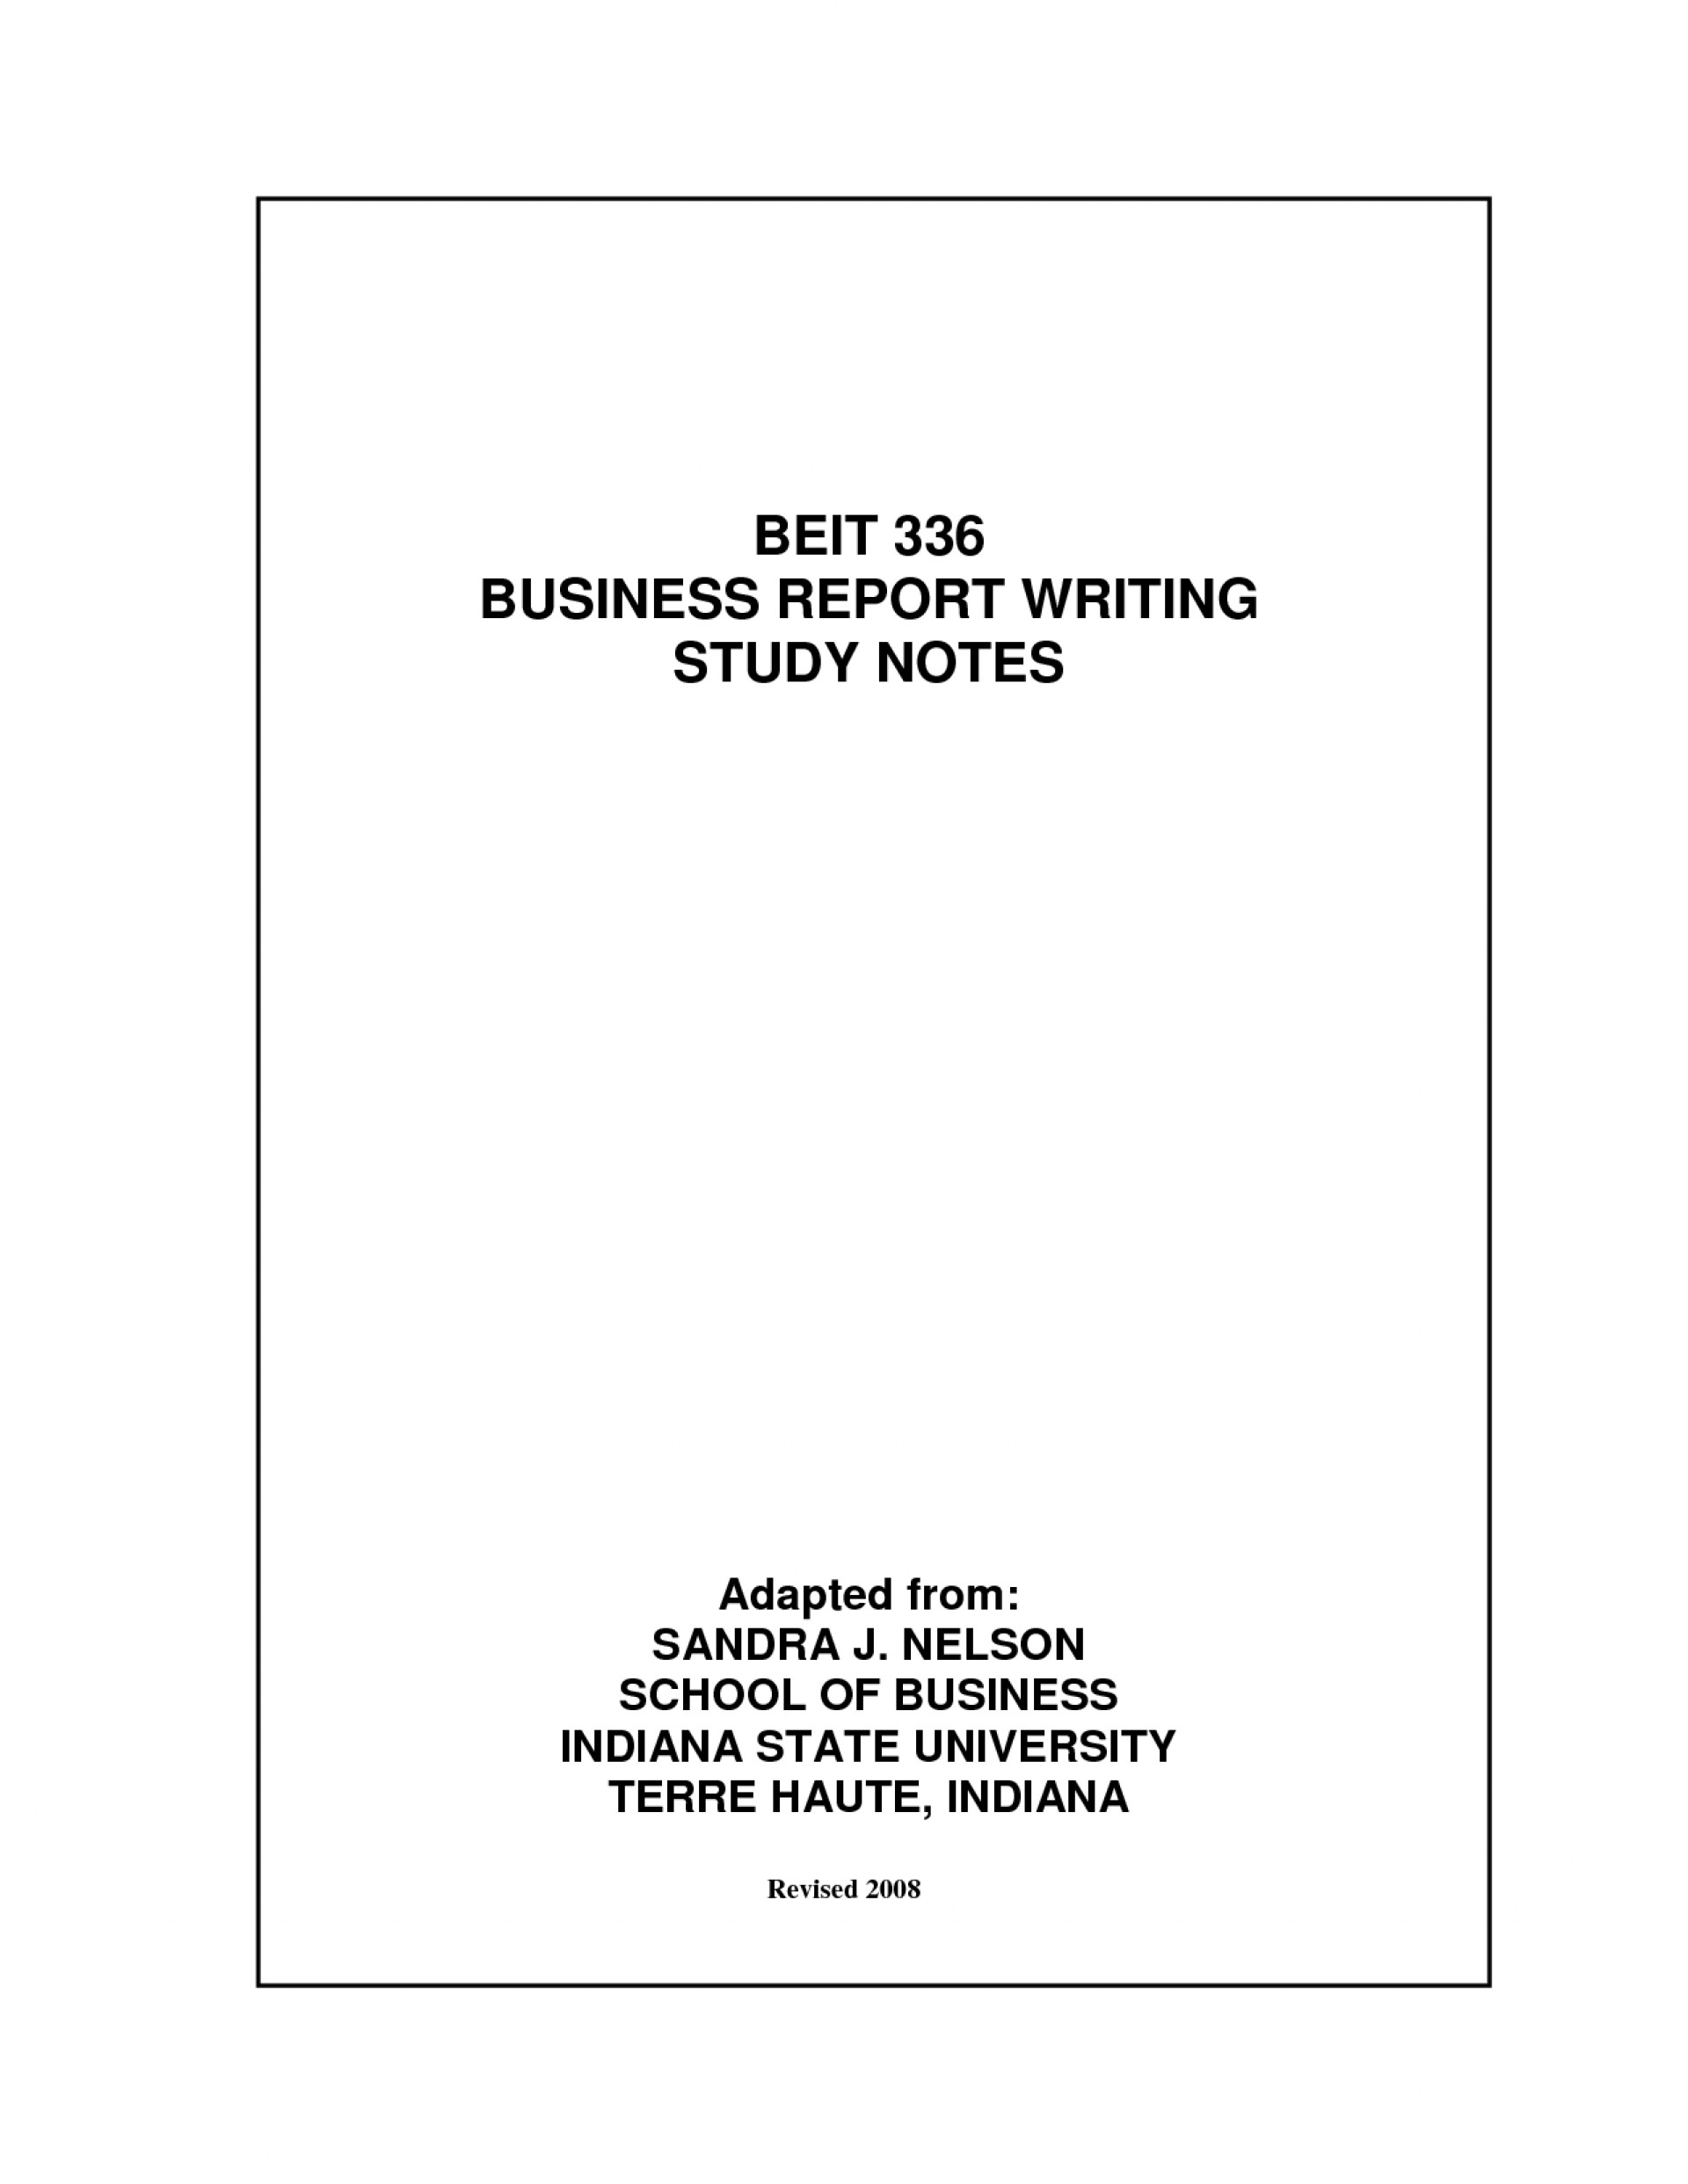 017 Apa Format Title Page Author Note 271370 Cover Research Paper Breathtaking Template Mla 1920